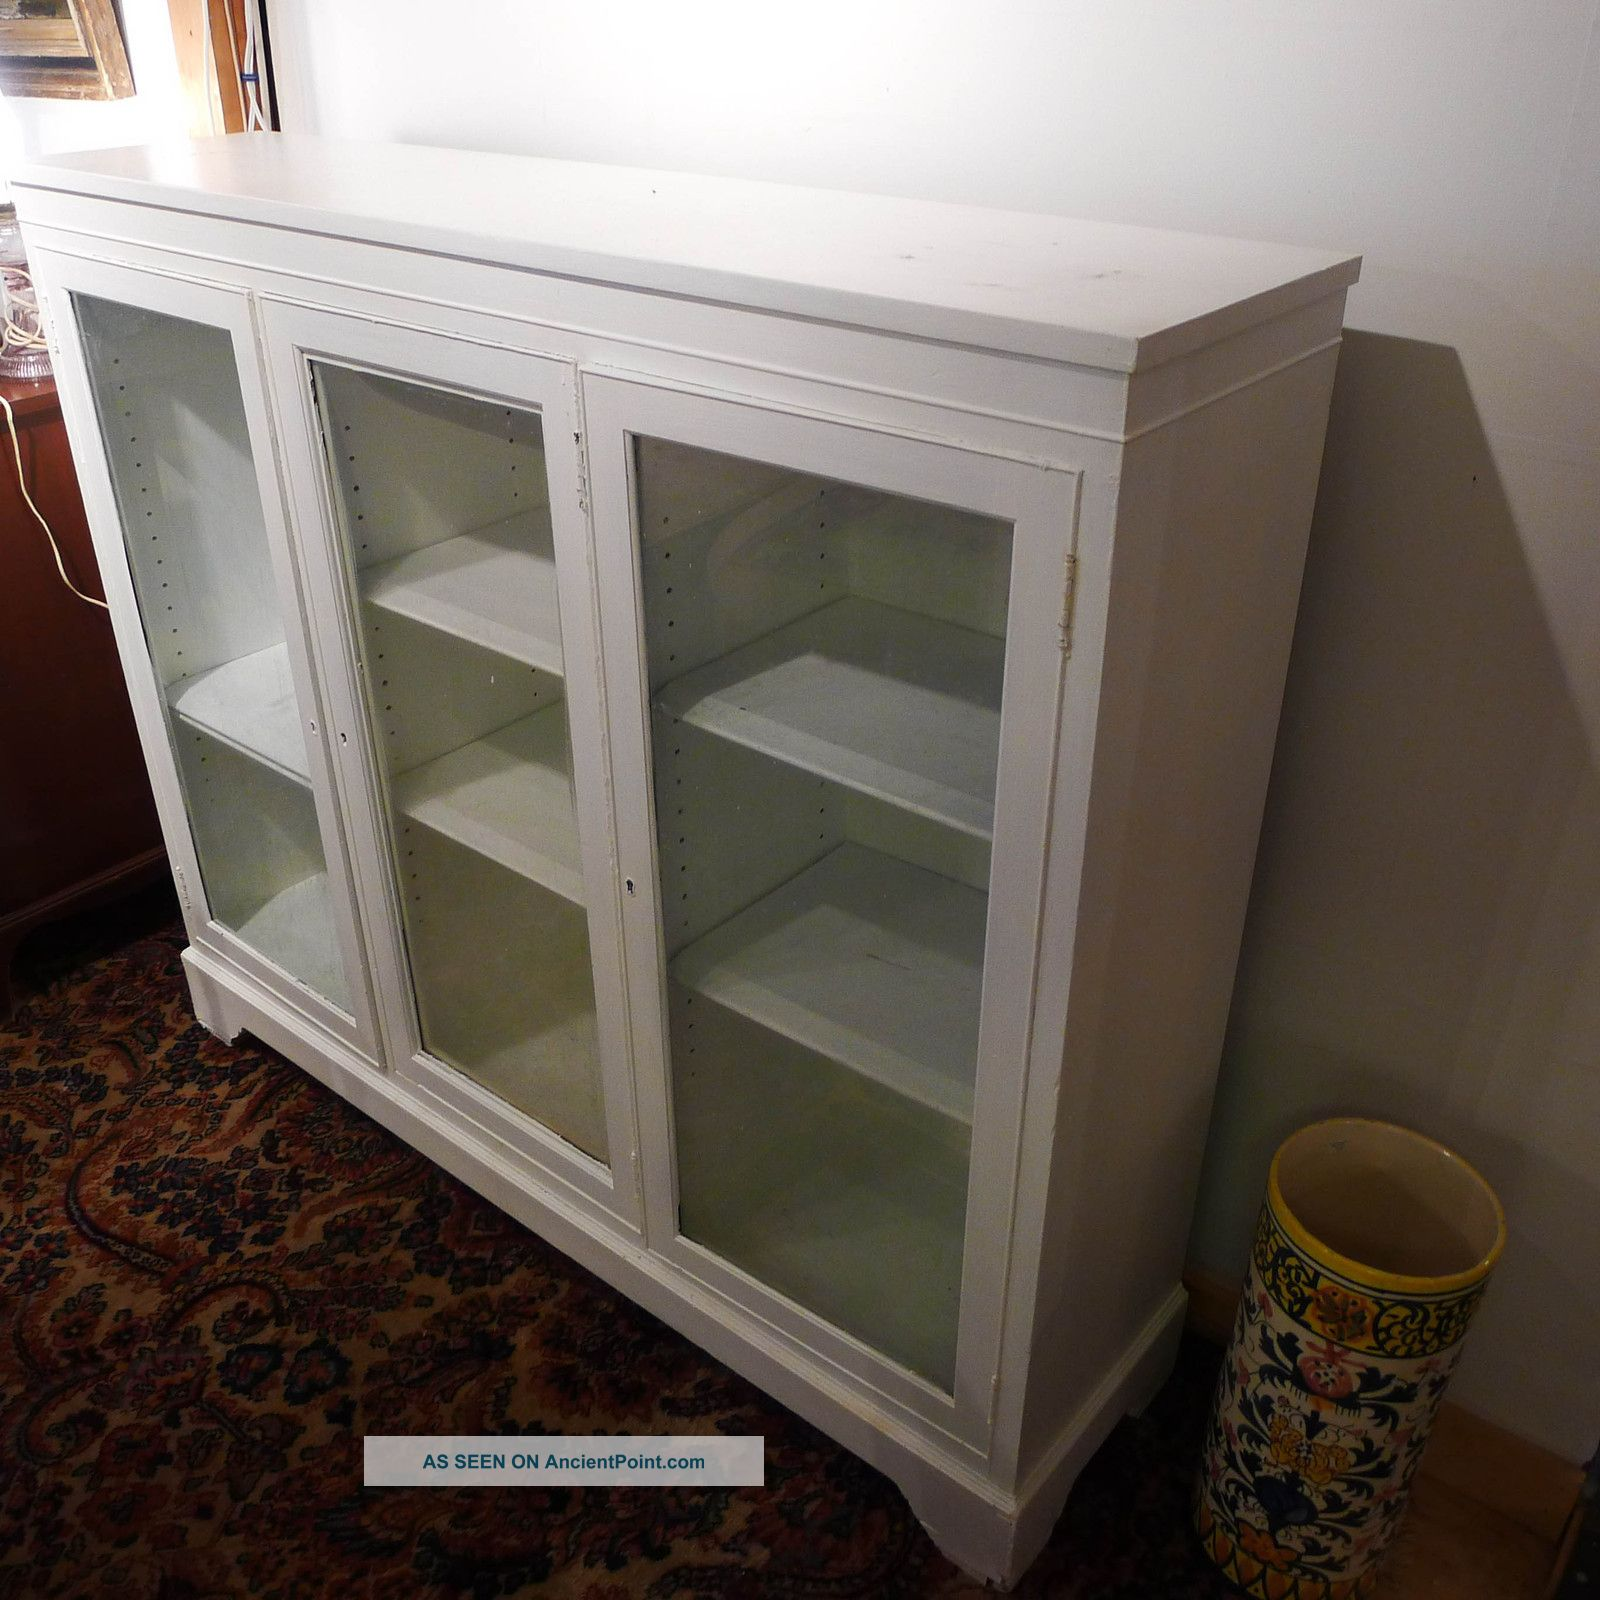 Antique Mahogany Standing Bookcase Painted White 55x13 5x47 5 Glass Swing Doors